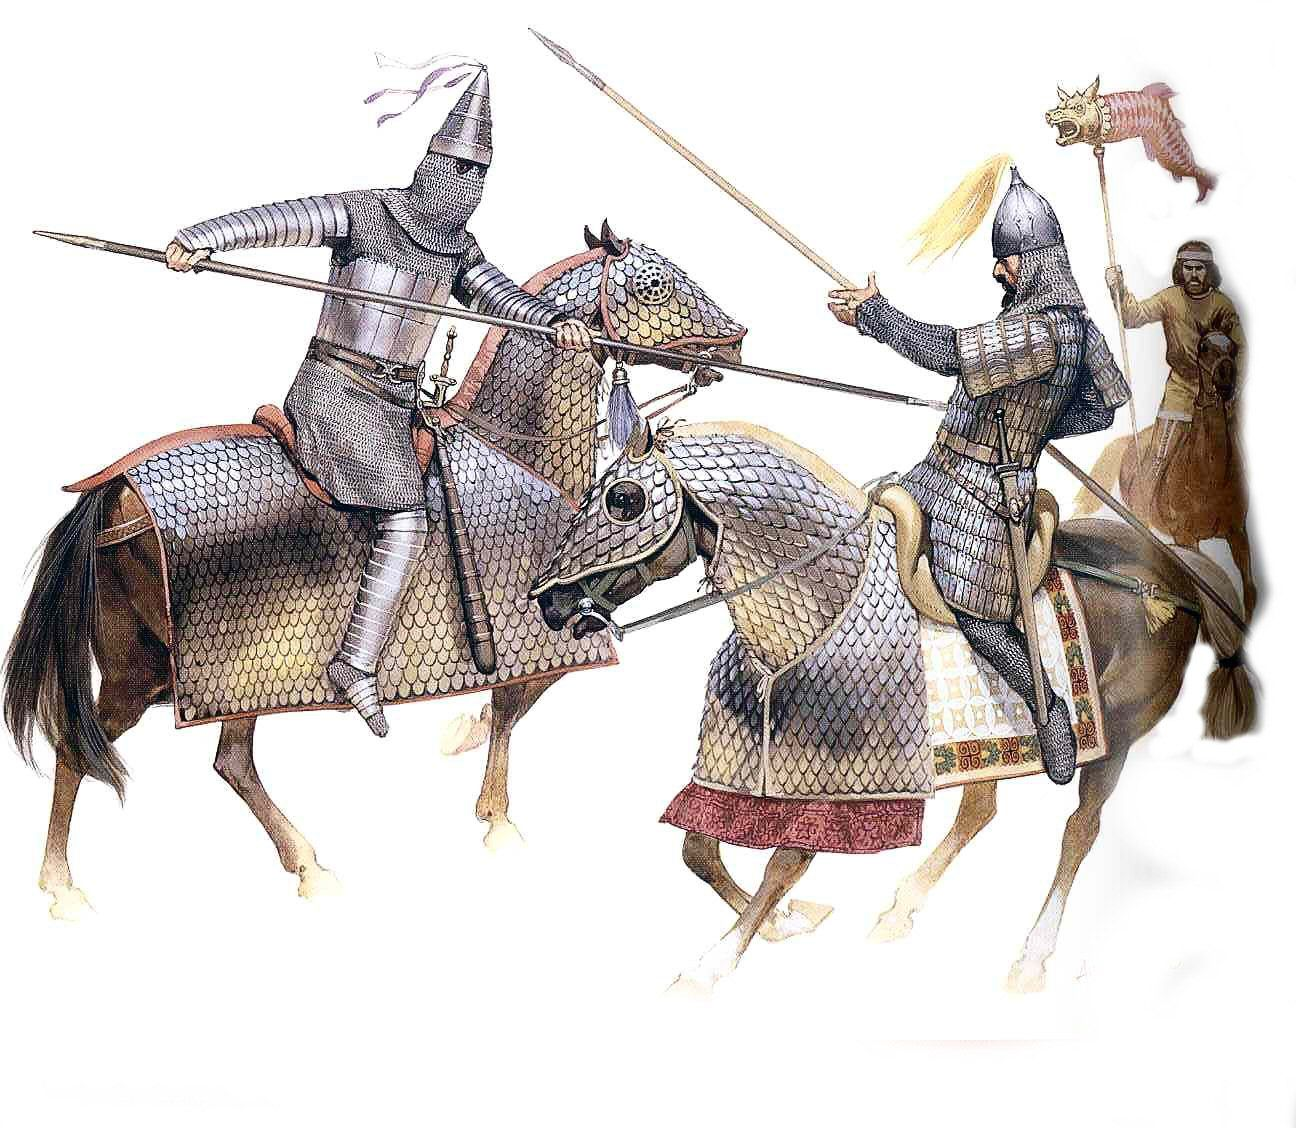 Duel of parthian and armenian cataphracts - Angus Mc Bride